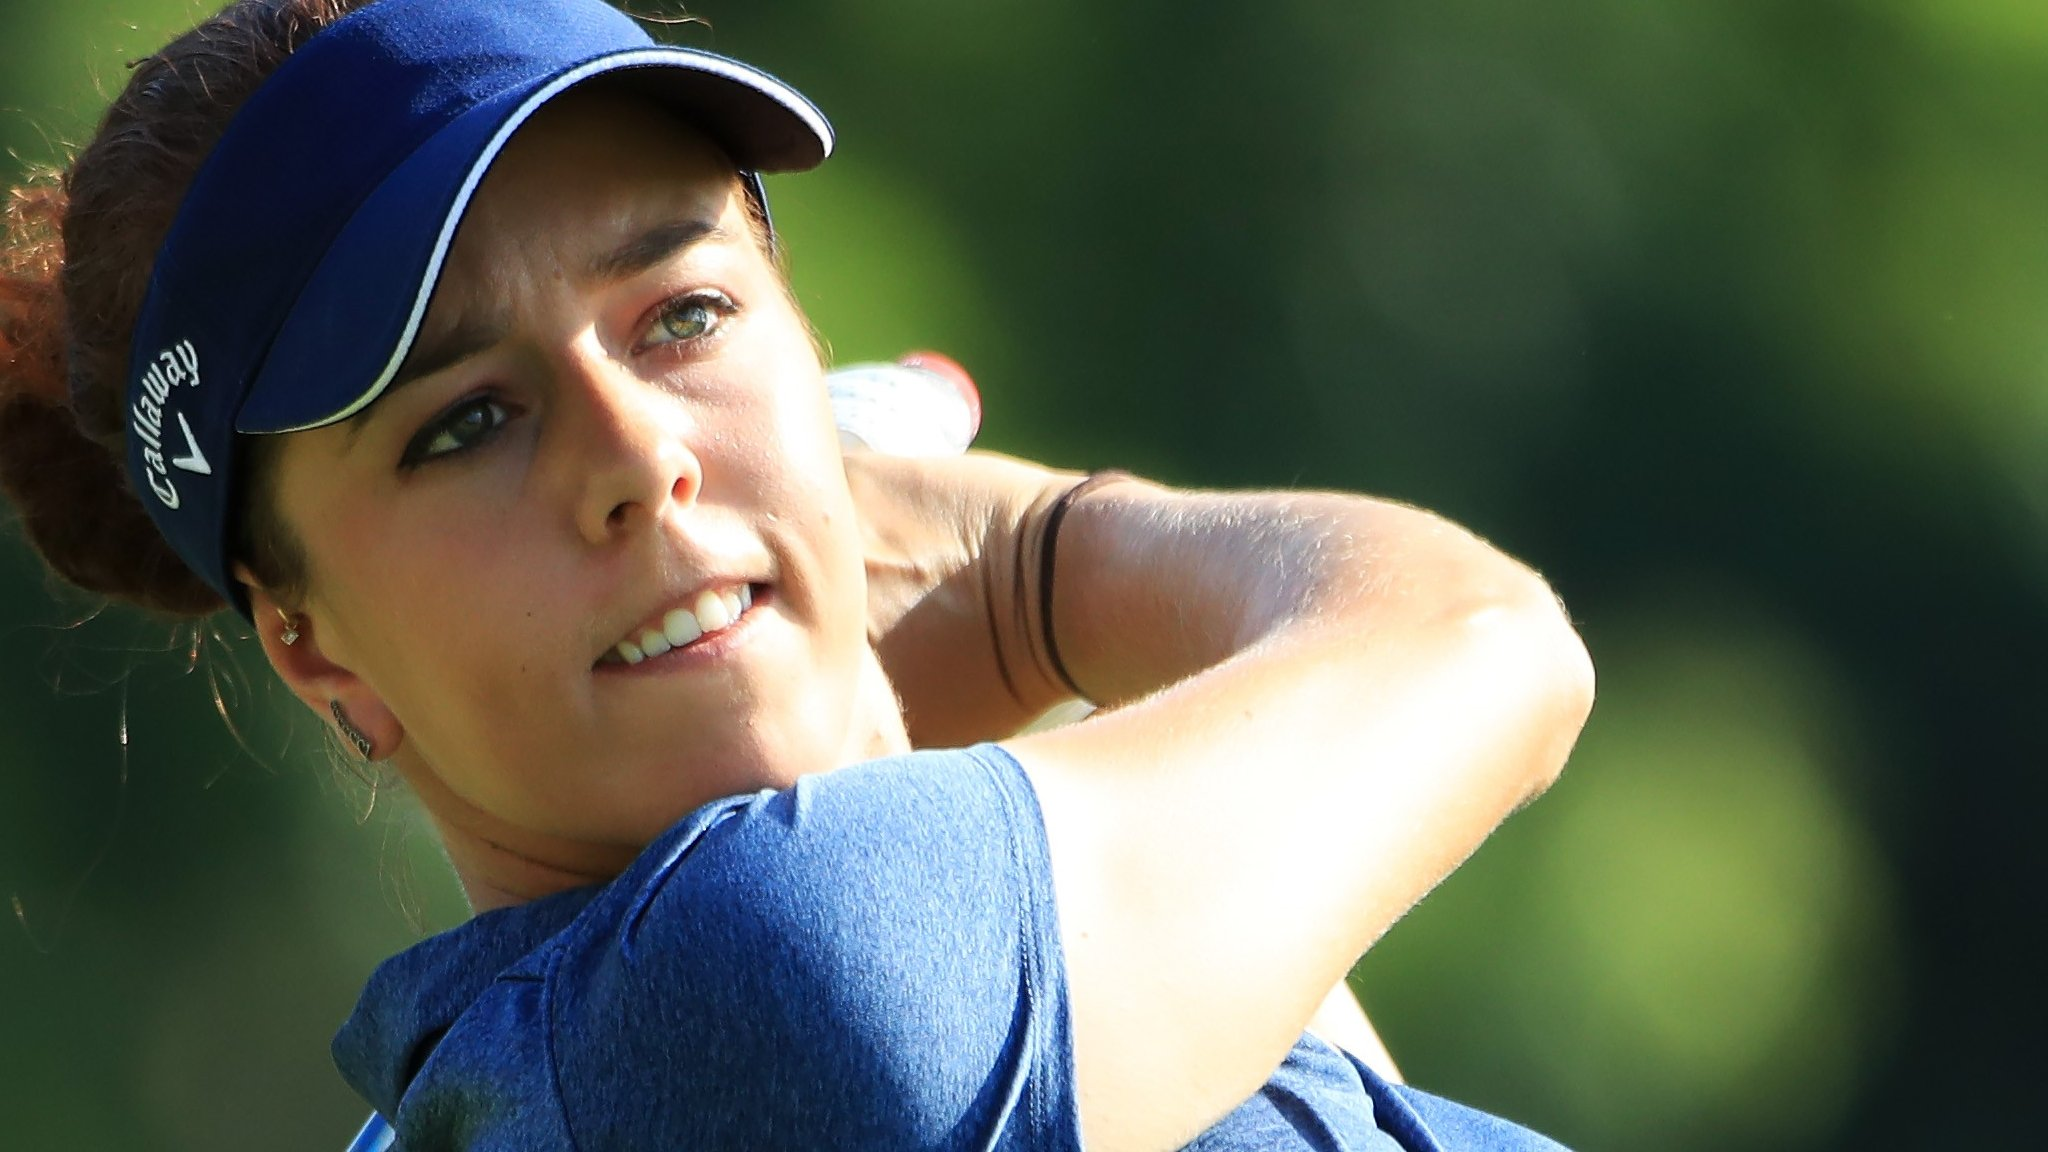 The Masters: Georgia Hall hopes for Augusta Women's Masters after amateur event